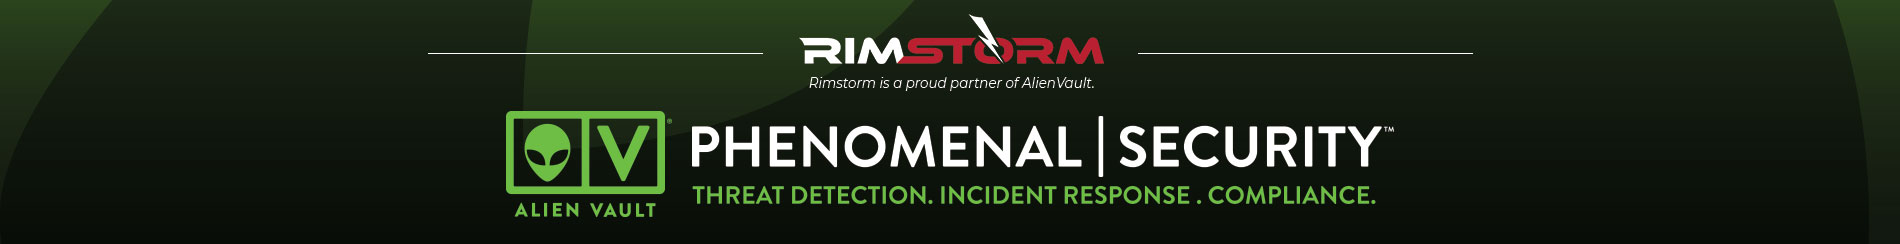 alienvault banner x sm 2 - Cloud Security